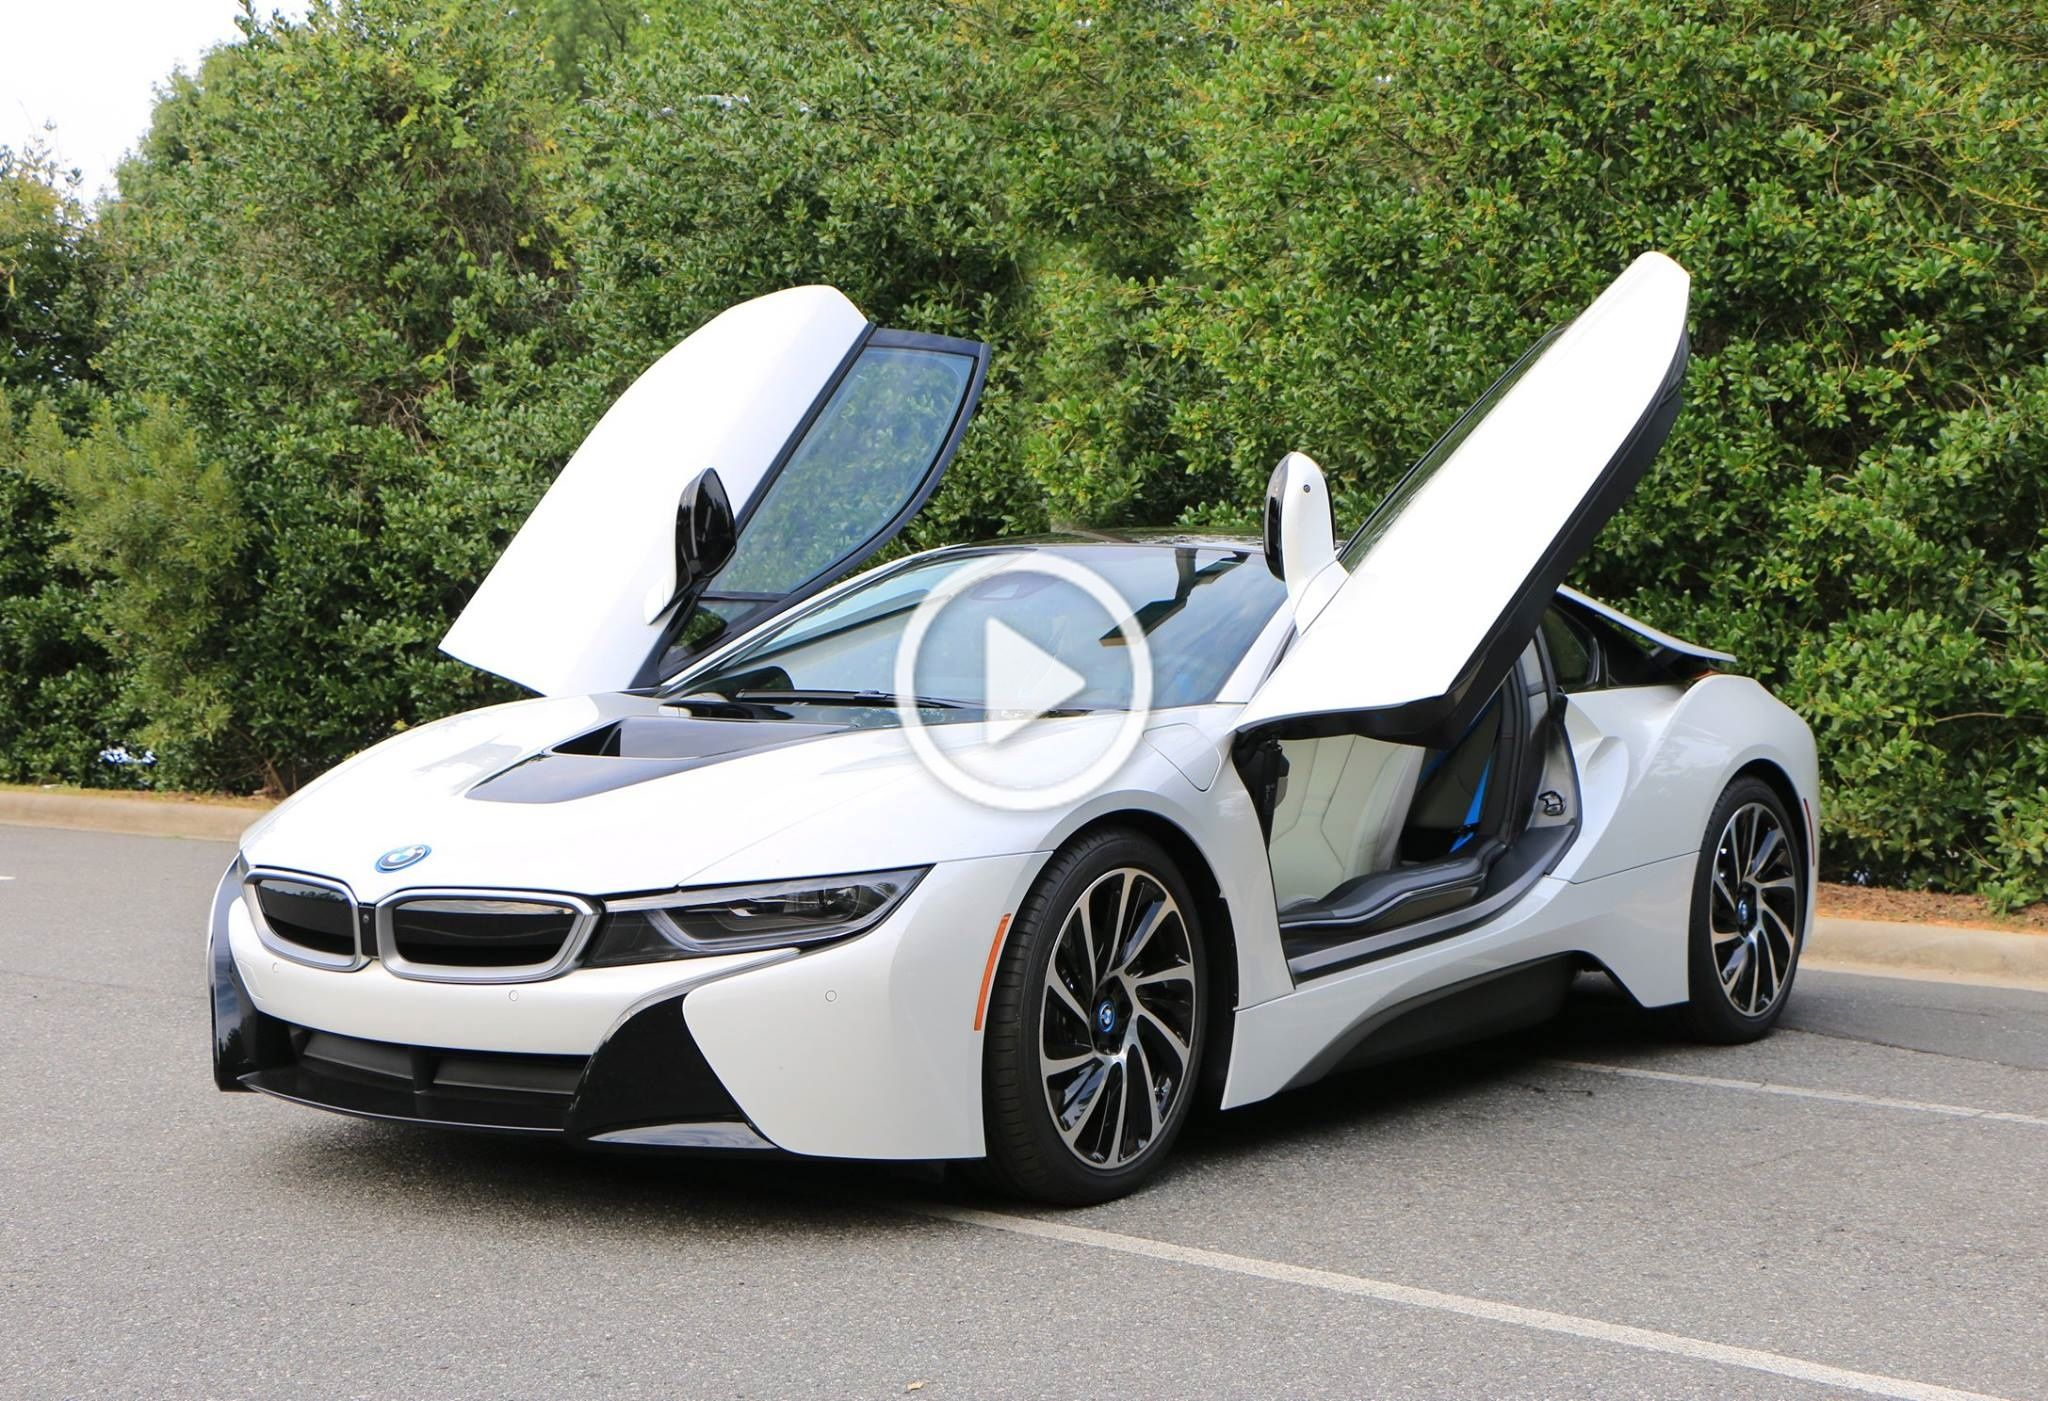 Bmw I Is The Kind Of Model That Makes You Fall In Love With - Sports car makes